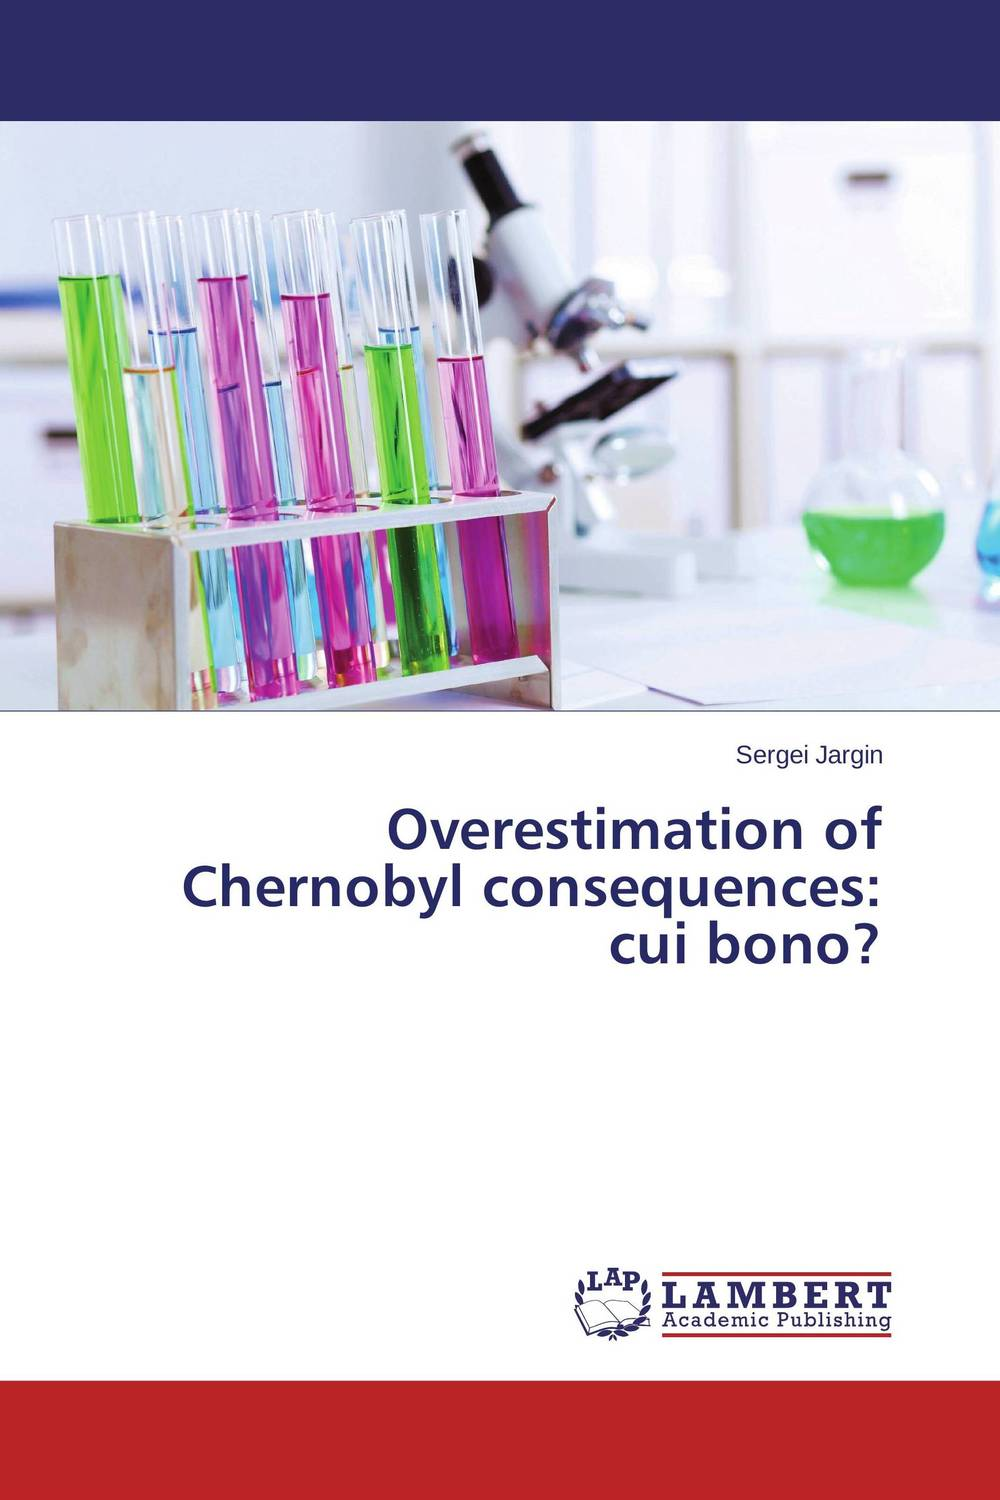 Overestimation of Chernobyl consequences: cui bono? fire in the rain the democratic consequences of chernobyl